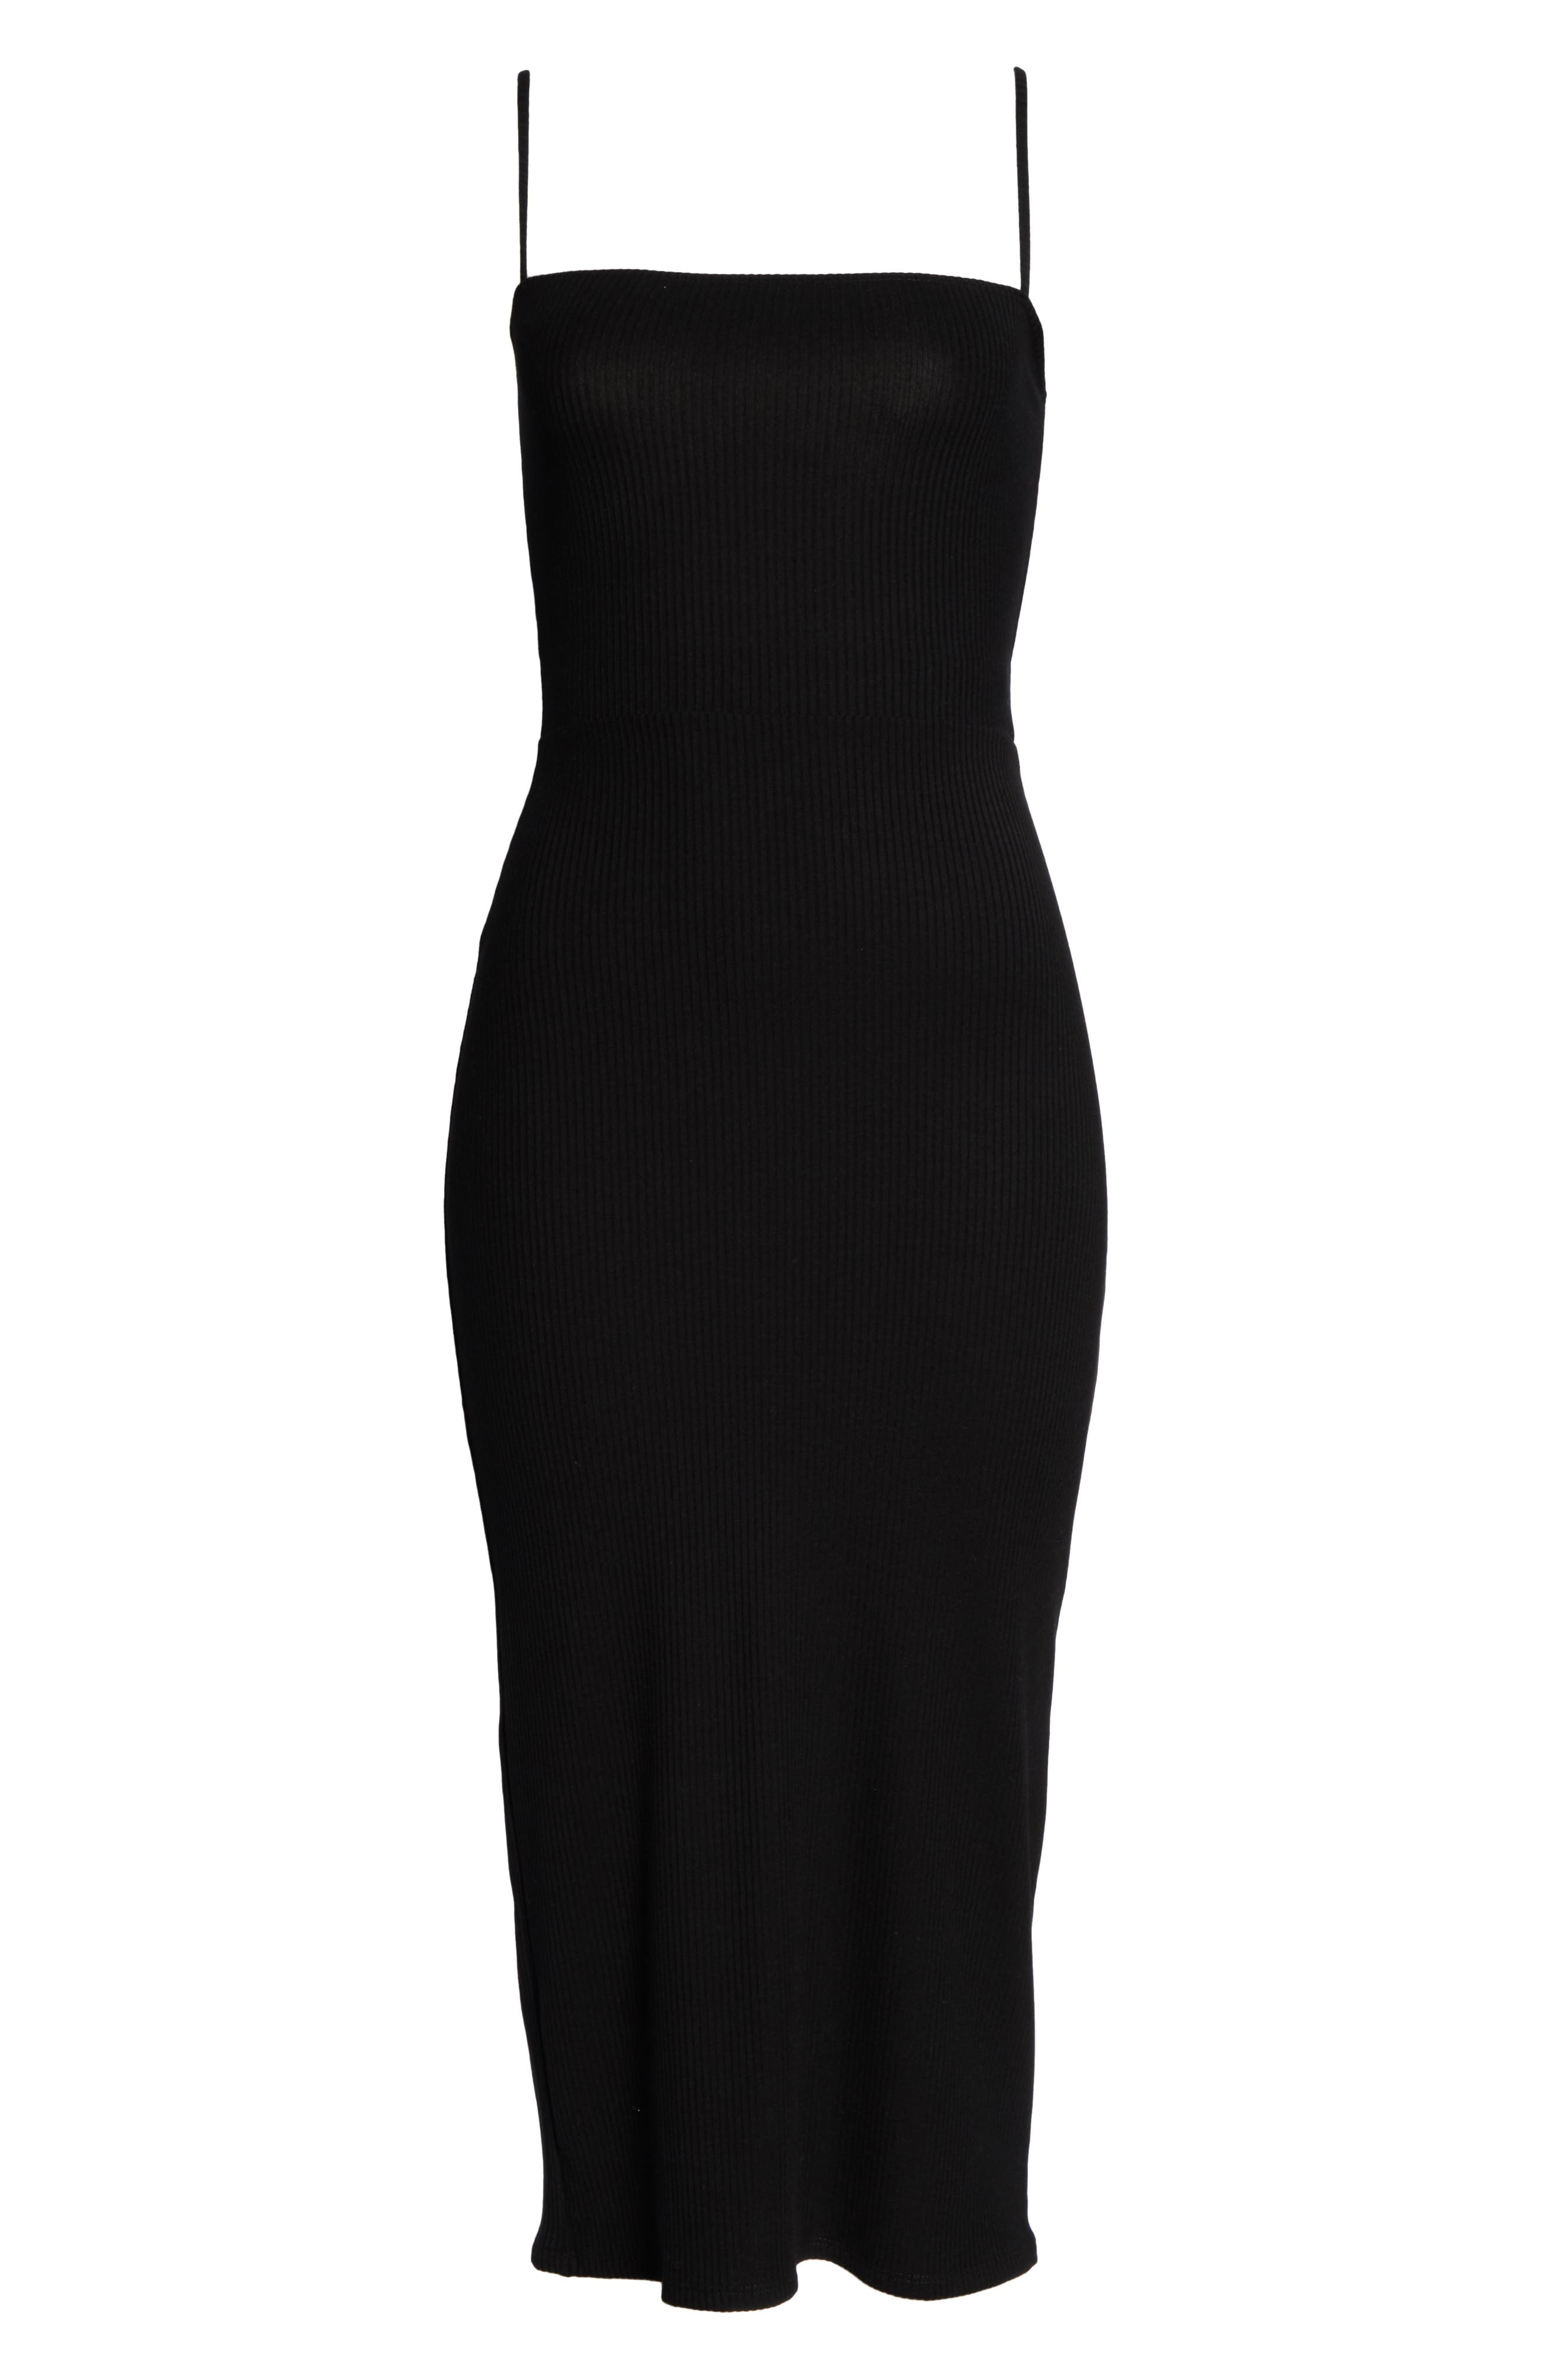 REFORMATION,                             Haley Midi Dress,                             Alternate thumbnail 4, color,                             BLACK